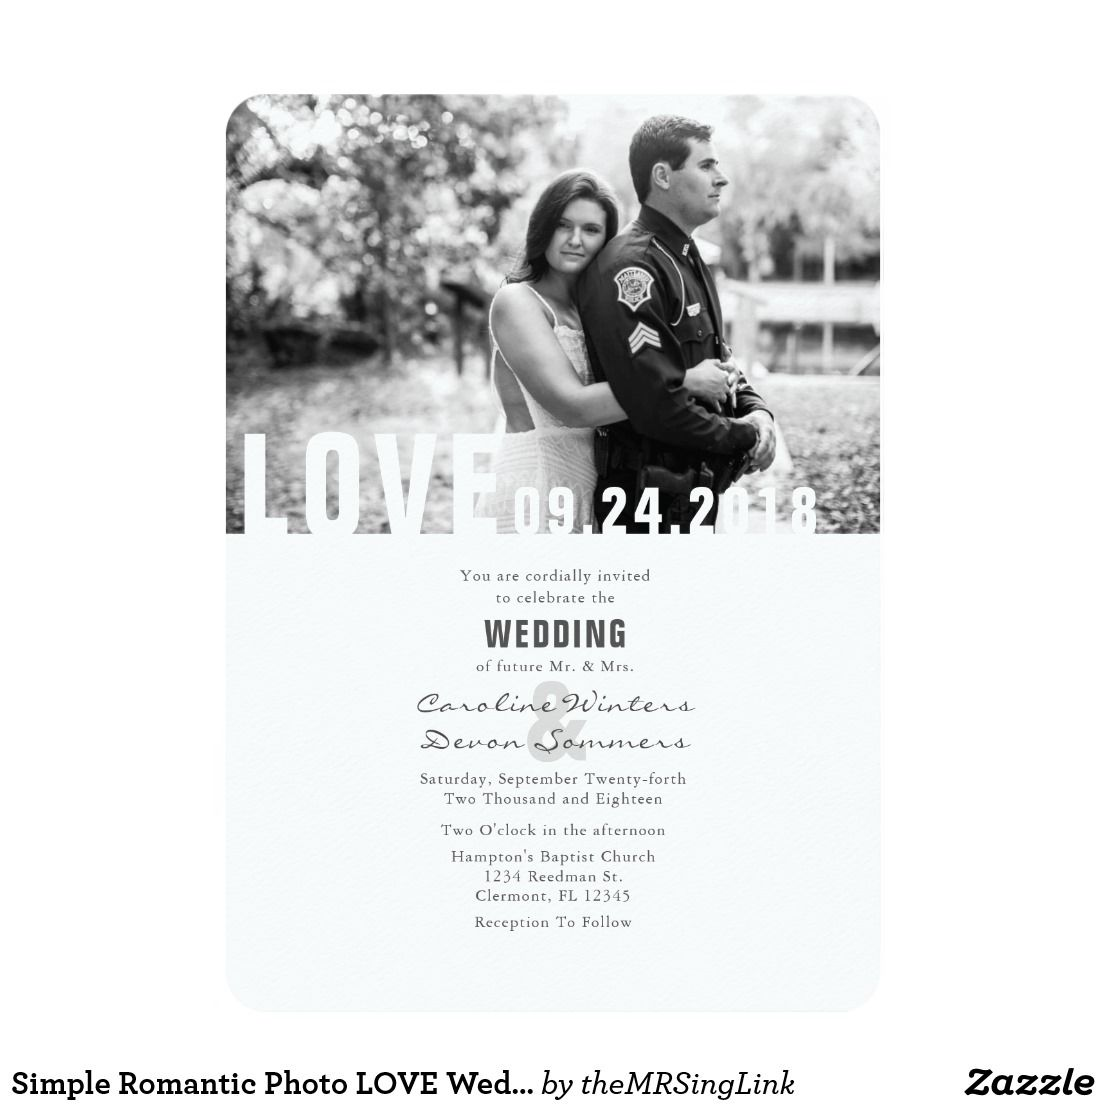 Simple Romantic Photo LOVE Wedding Invitation